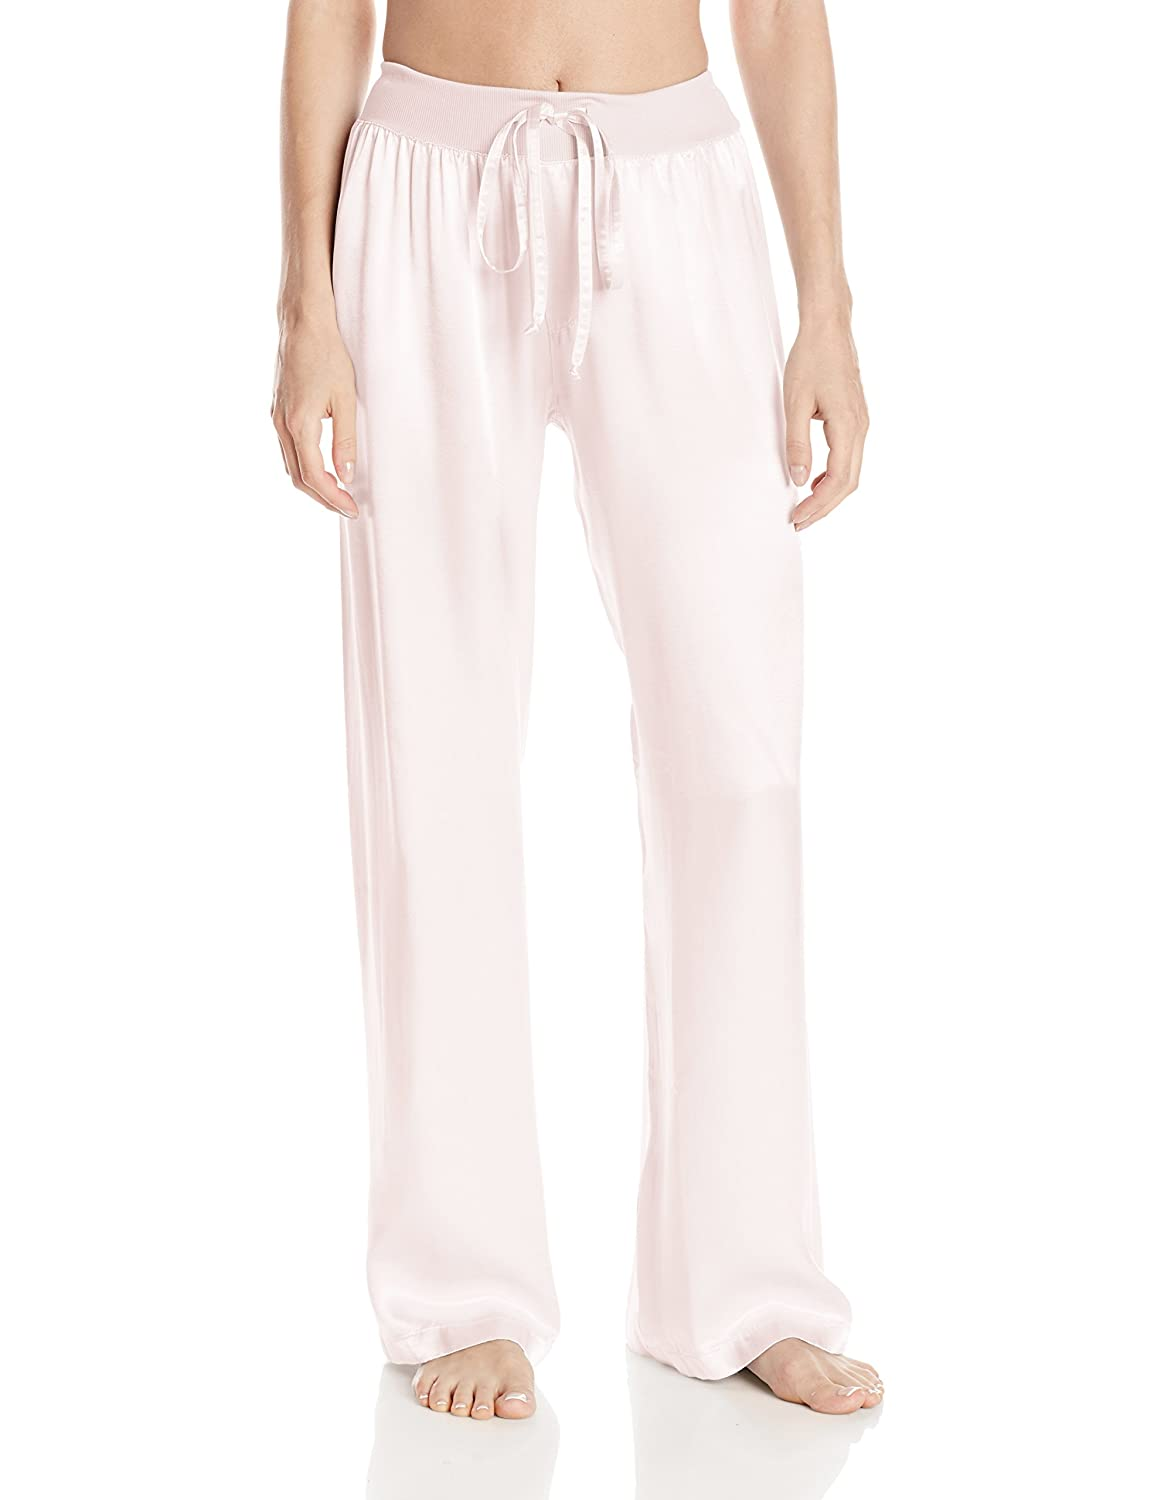 bluesh PJ Harlow Women's Jolie Satin Pant with Draw String